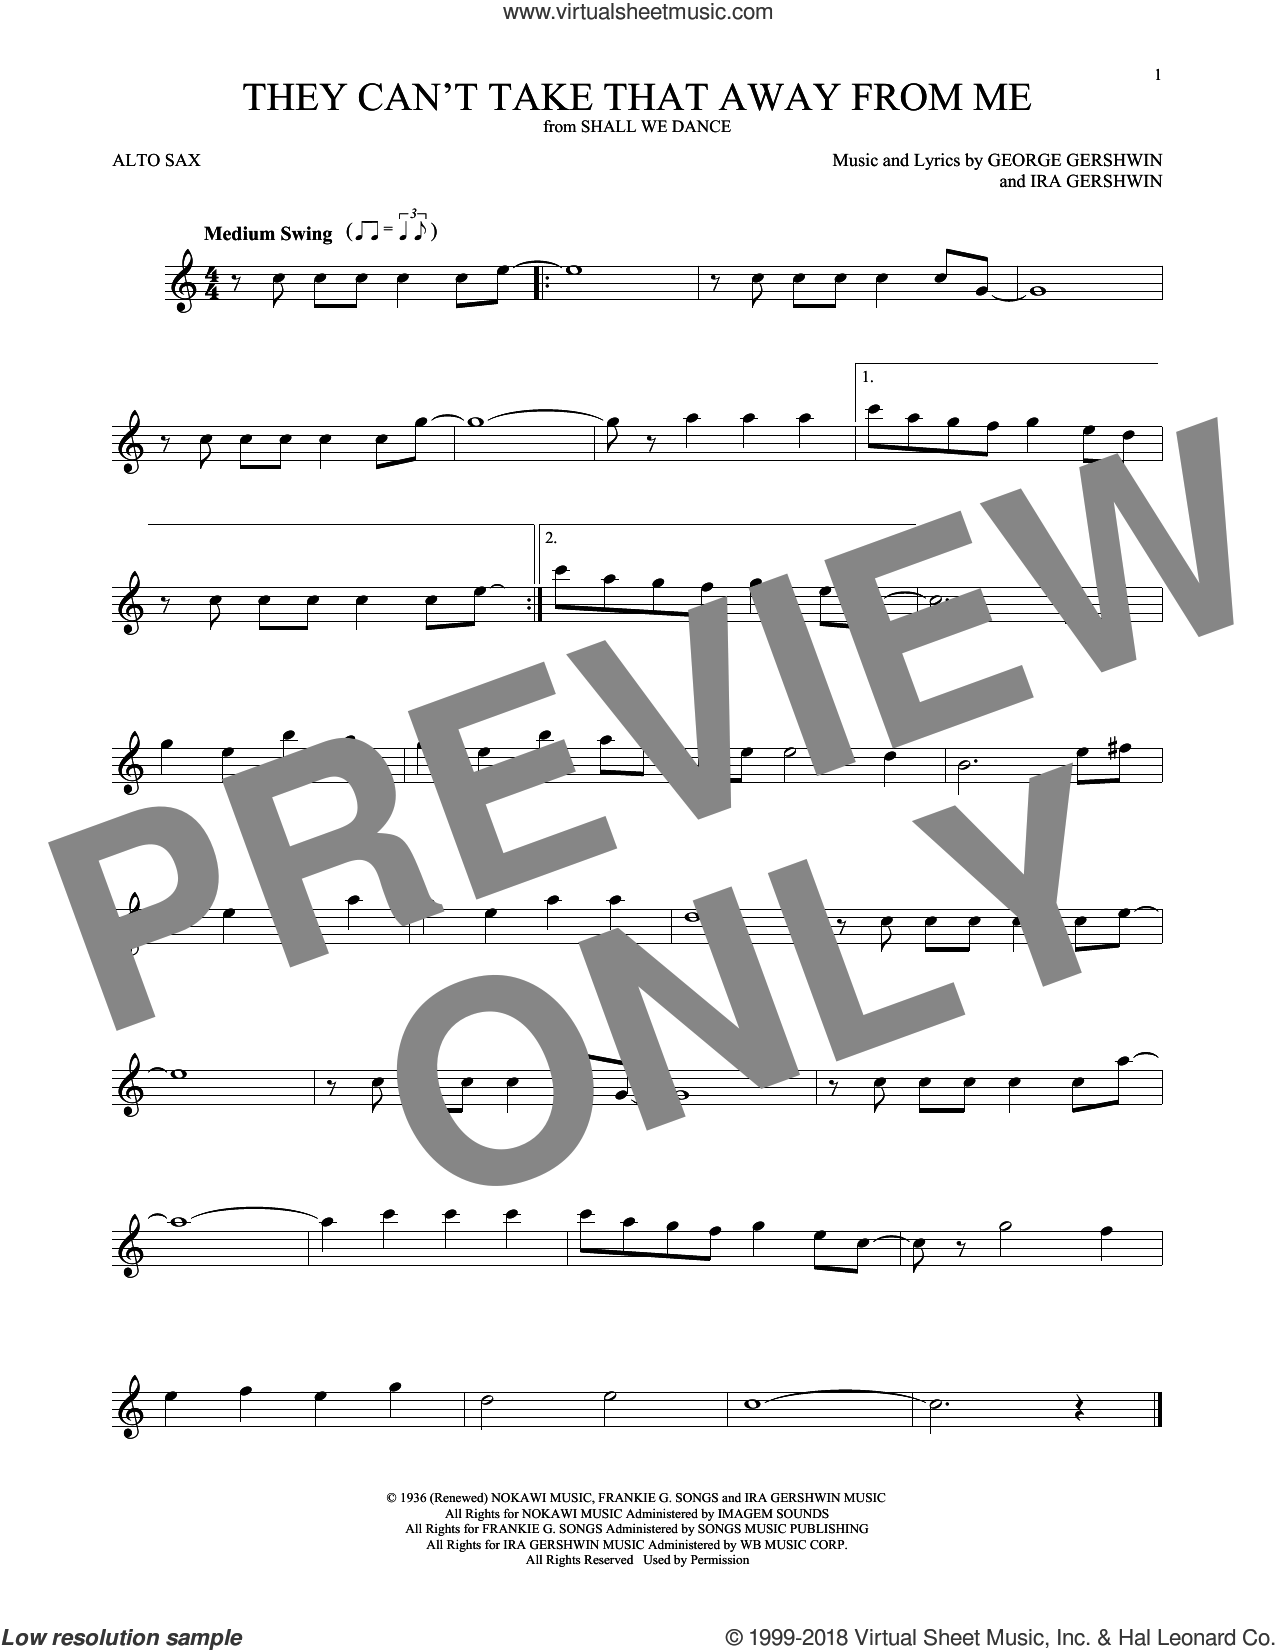 They Can't Take That Away From Me sheet music for alto saxophone solo by Frank Sinatra, George Gershwin and Ira Gershwin, intermediate. Score Image Preview.